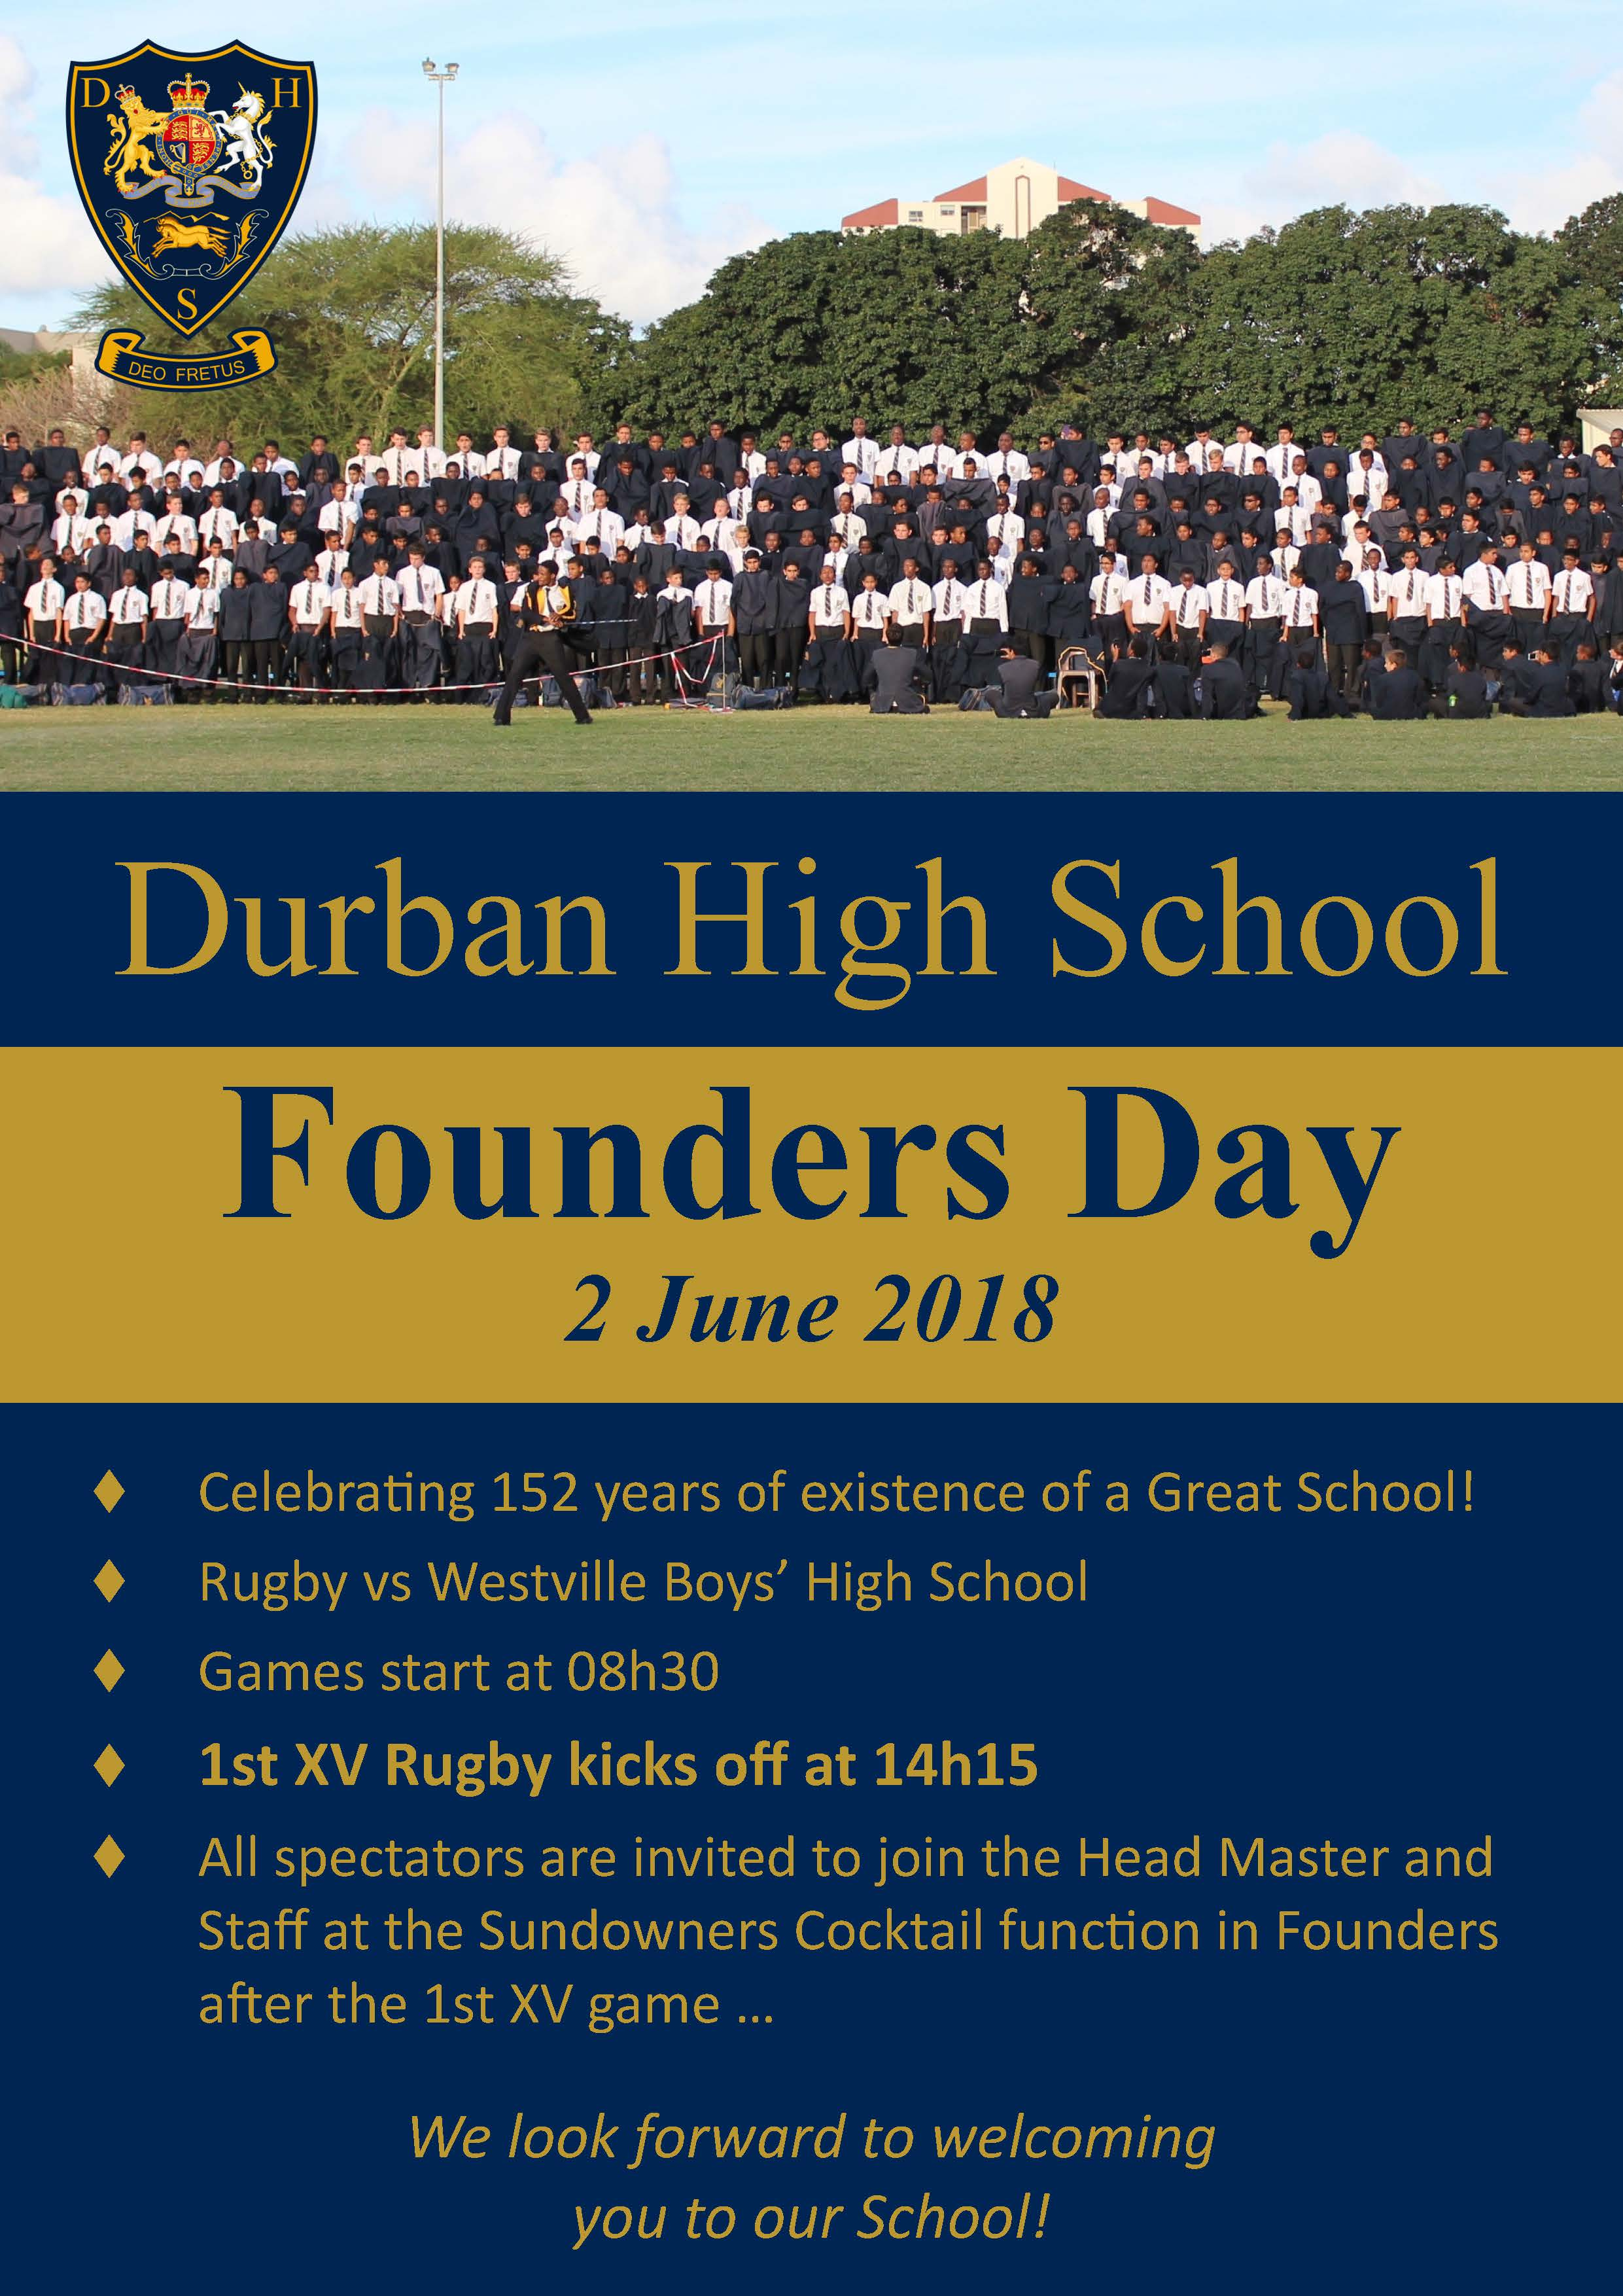 Founders Day : 2 June 2018